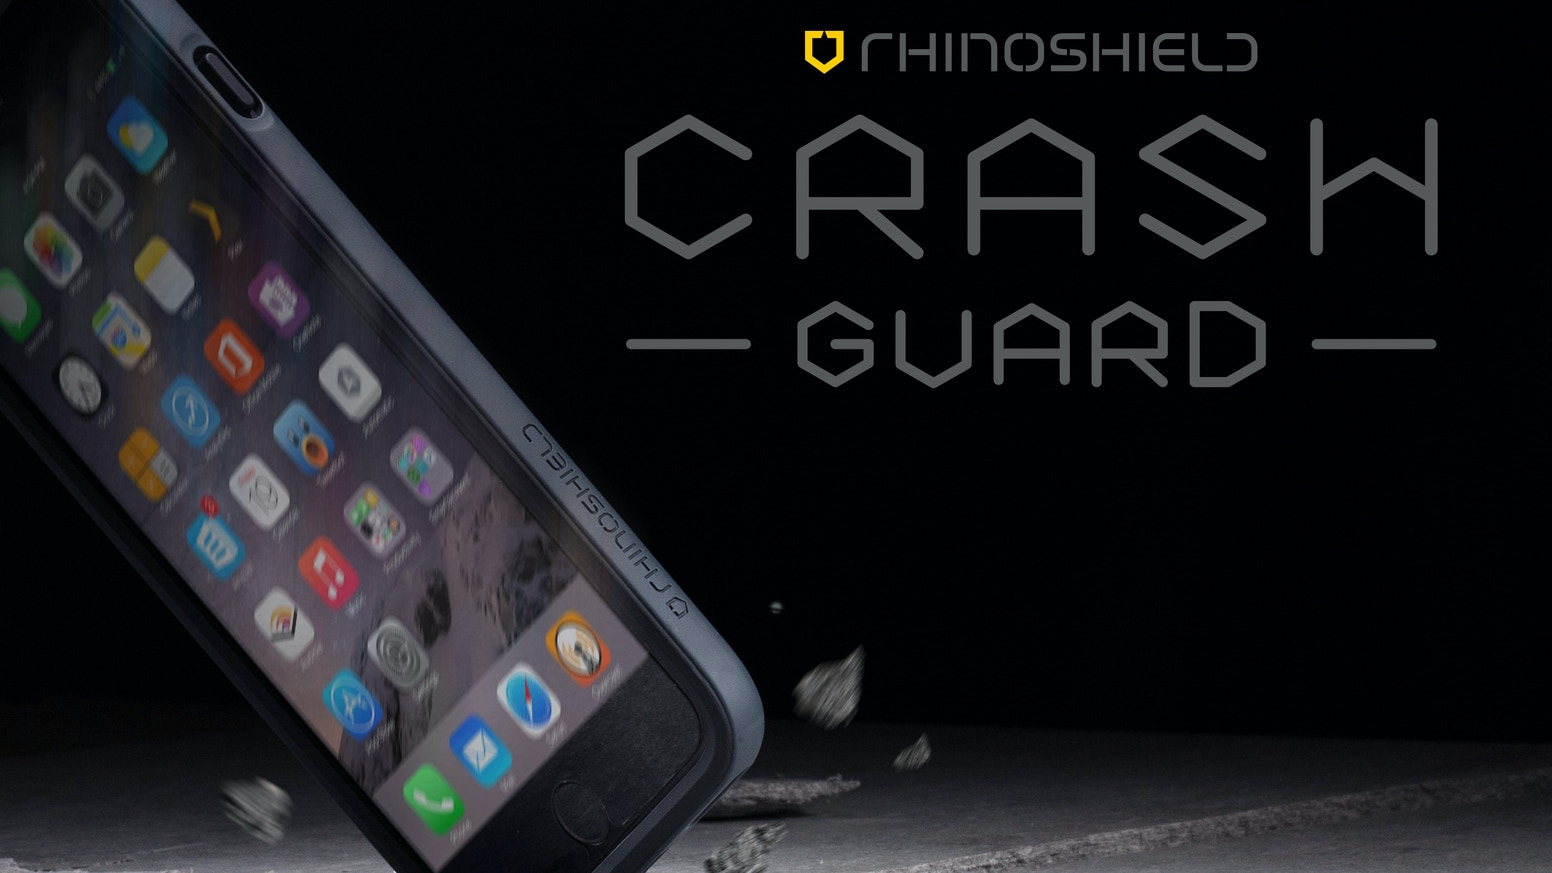 A slim profile bumper case that provides amazing drop protection. Protection that does NOT compromise on the original design